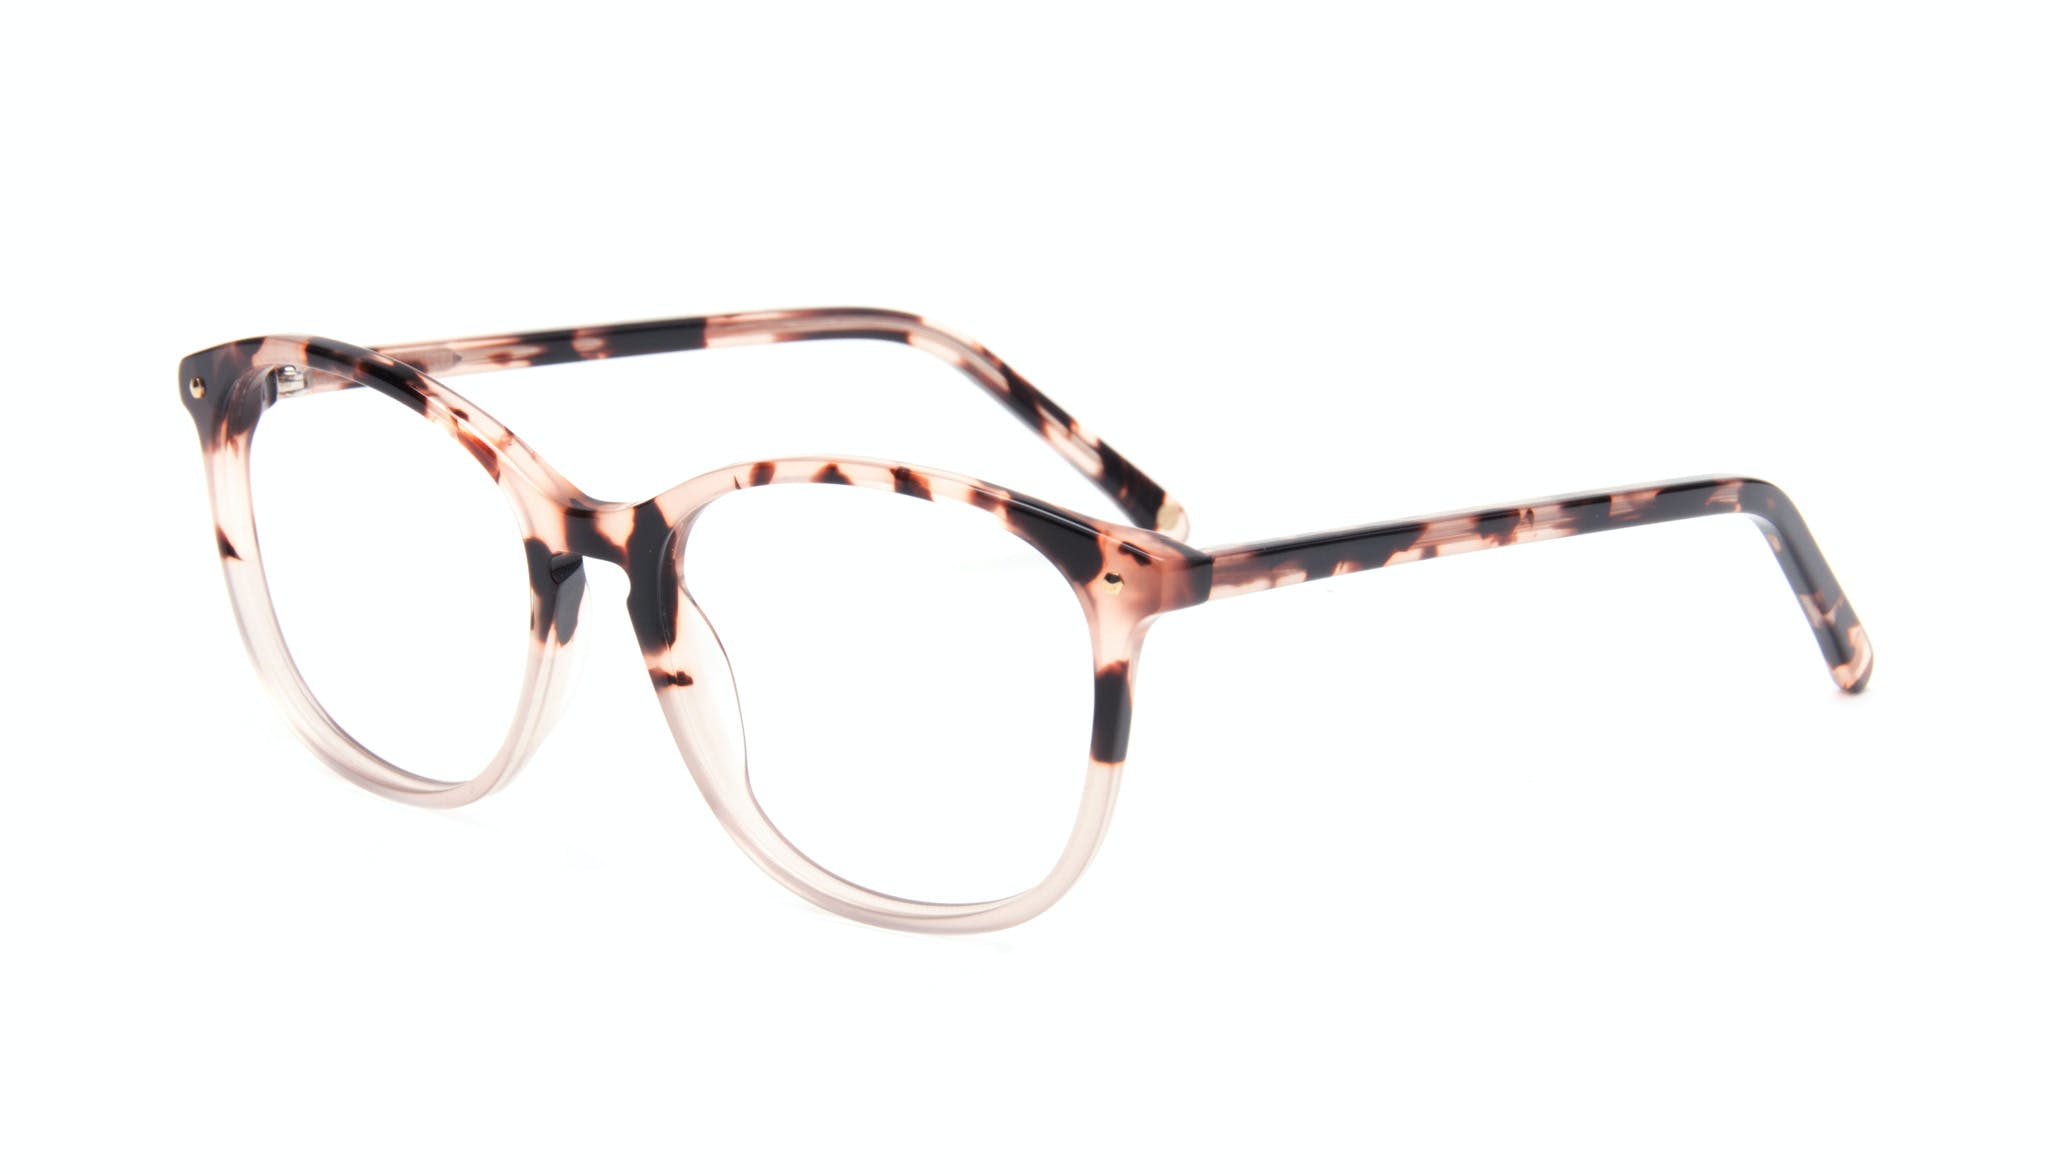 Affordable Fashion Glasses Rectangle Square Round Eyeglasses Women Nadine Two Tone Pink Tilt